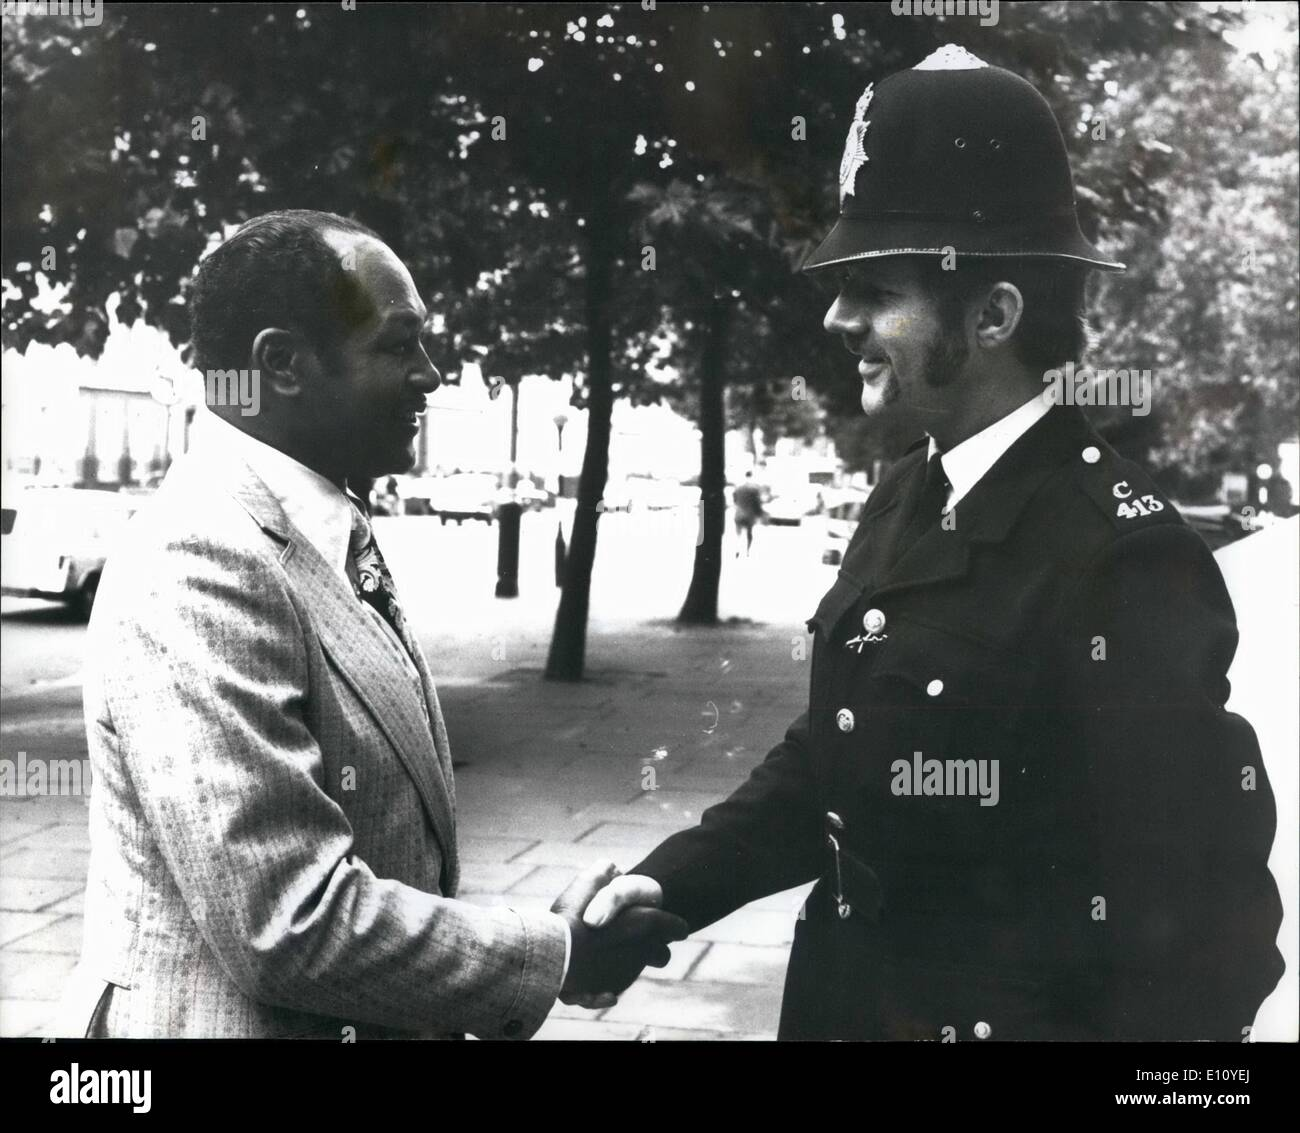 Sep. 09, 1974 - First Black Mayor of Los Angeles visits London: Mr. Thomas Bradley, the recently elected first Black mayor of Los Angeles, who is on a visit to London, last evening went to the American Embassy where he met the Press. Photo shows Mr. Bradley, a former police Lieutenant, shakes hands with a London policeman, when he arrived at the American Embassy last evening. - Stock Image